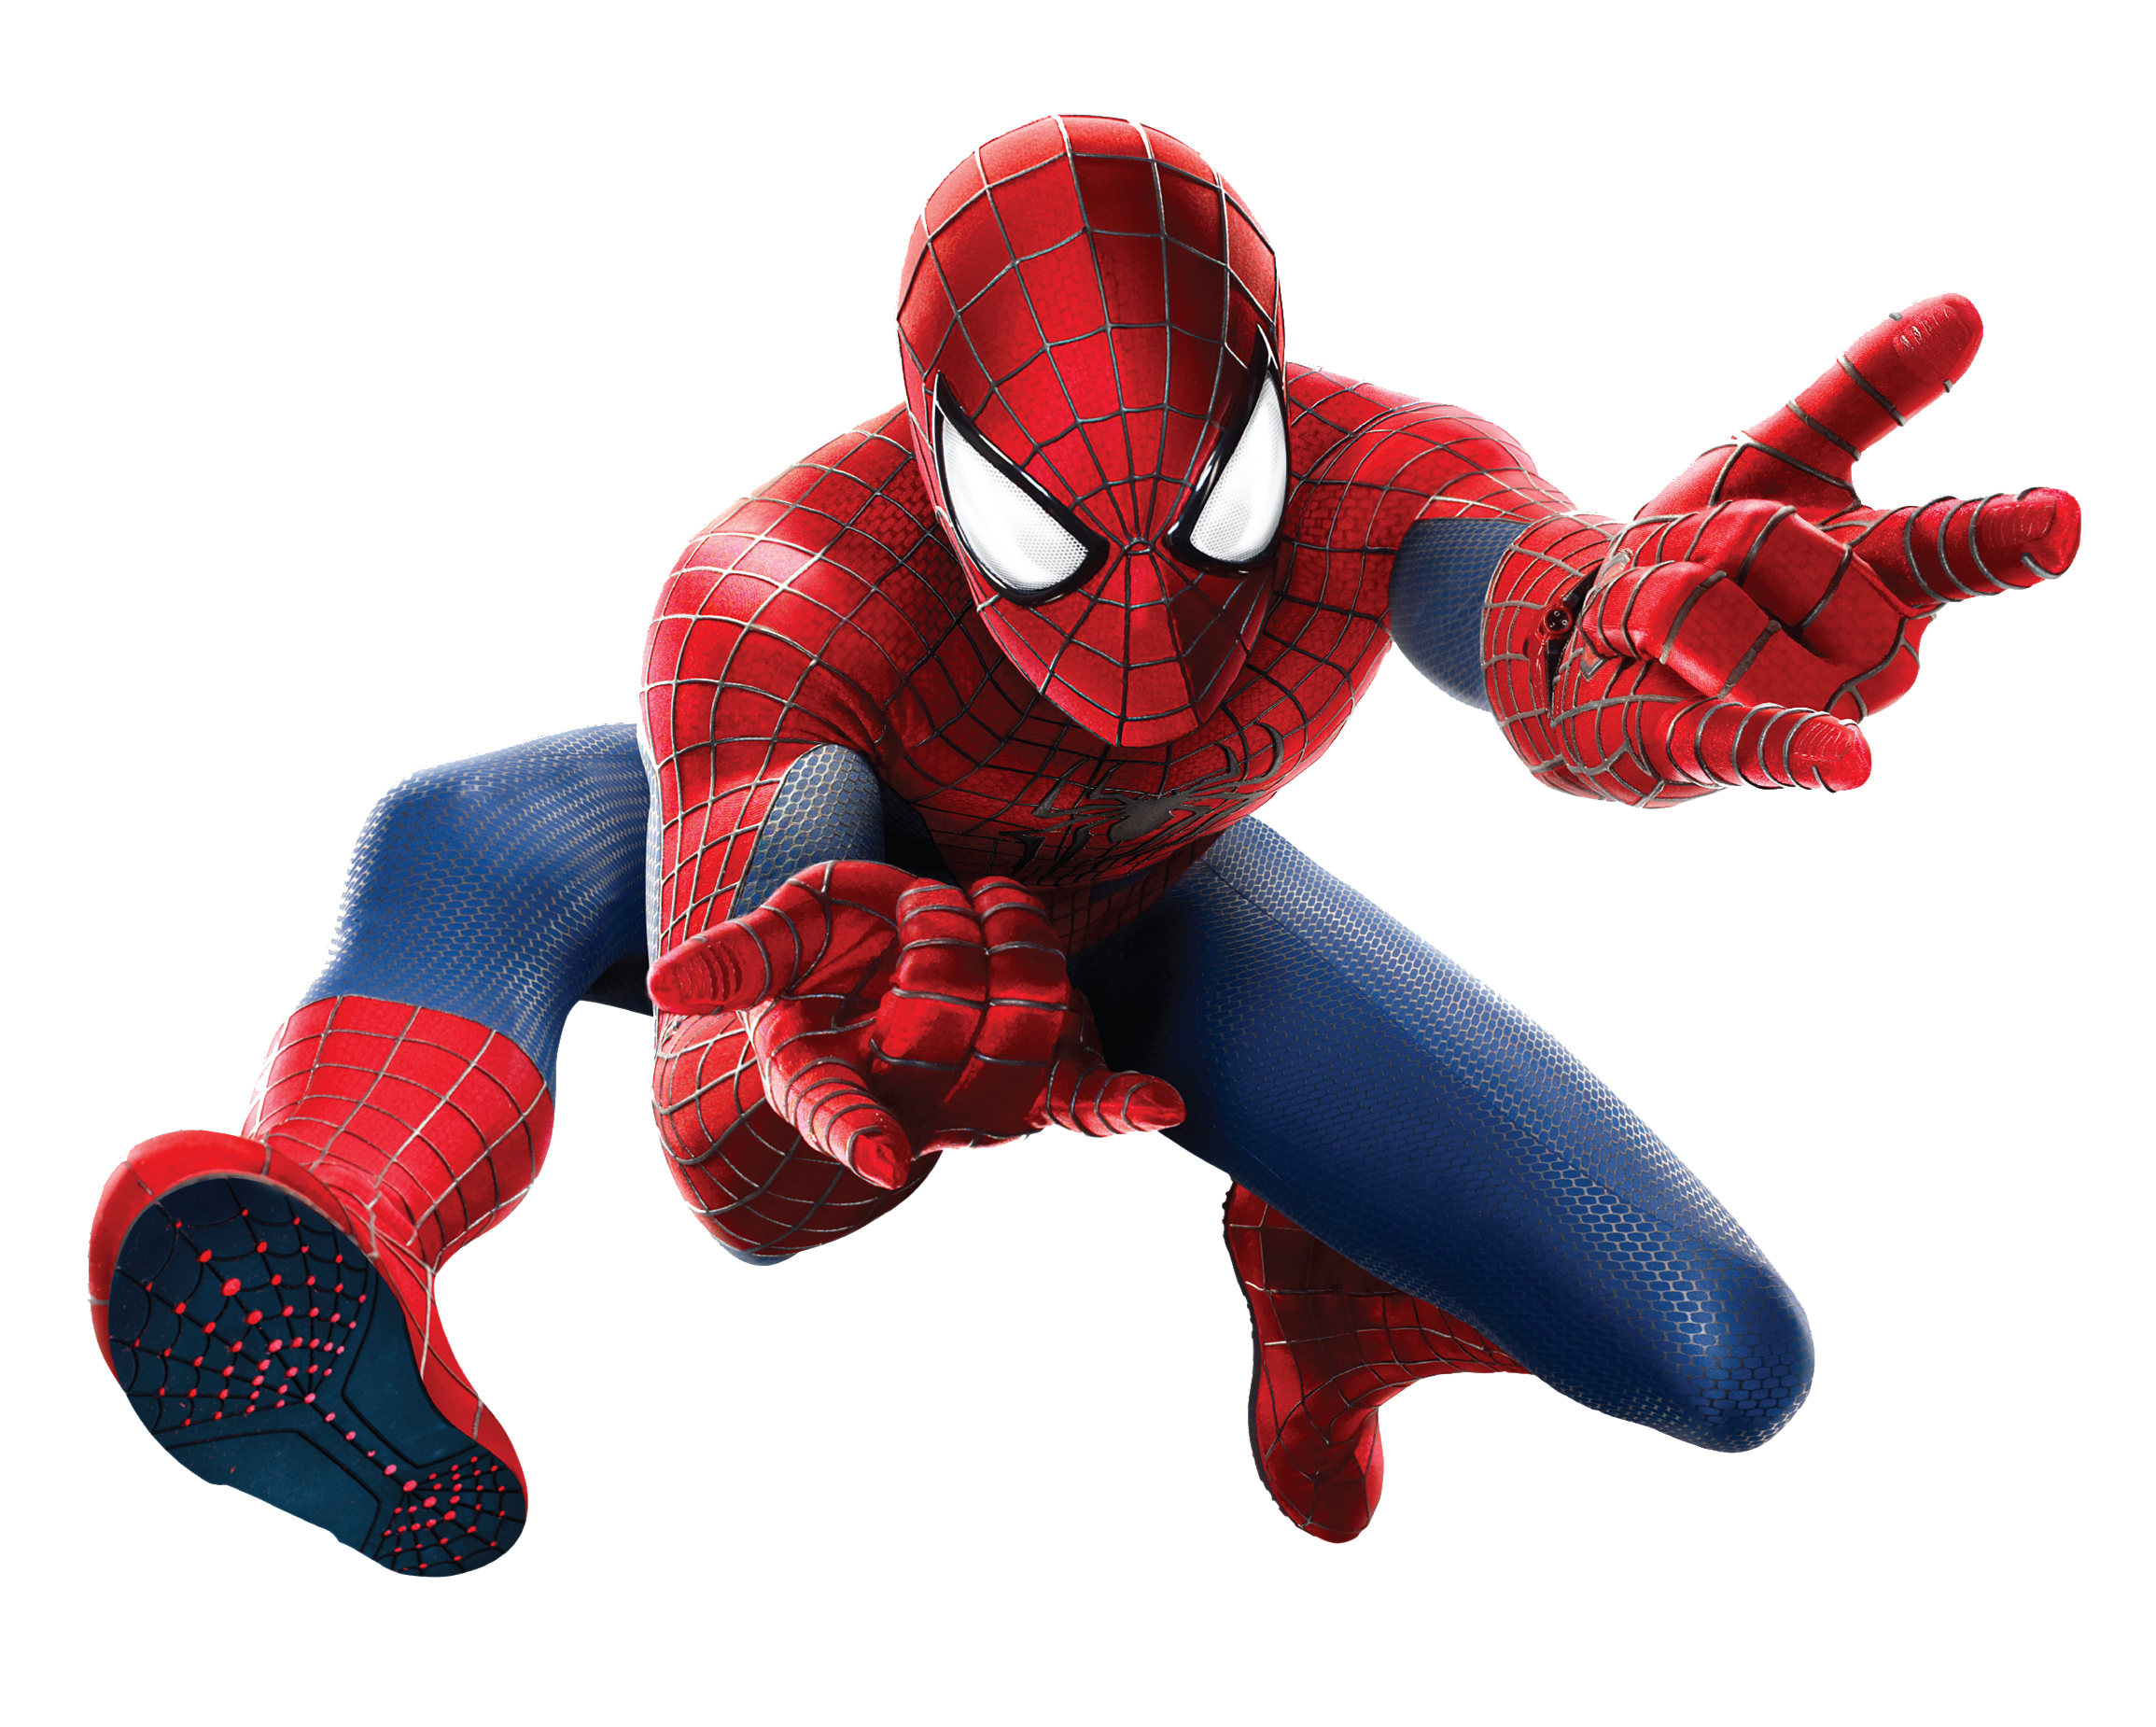 Spiderman png images. Transparent pluspng hd image